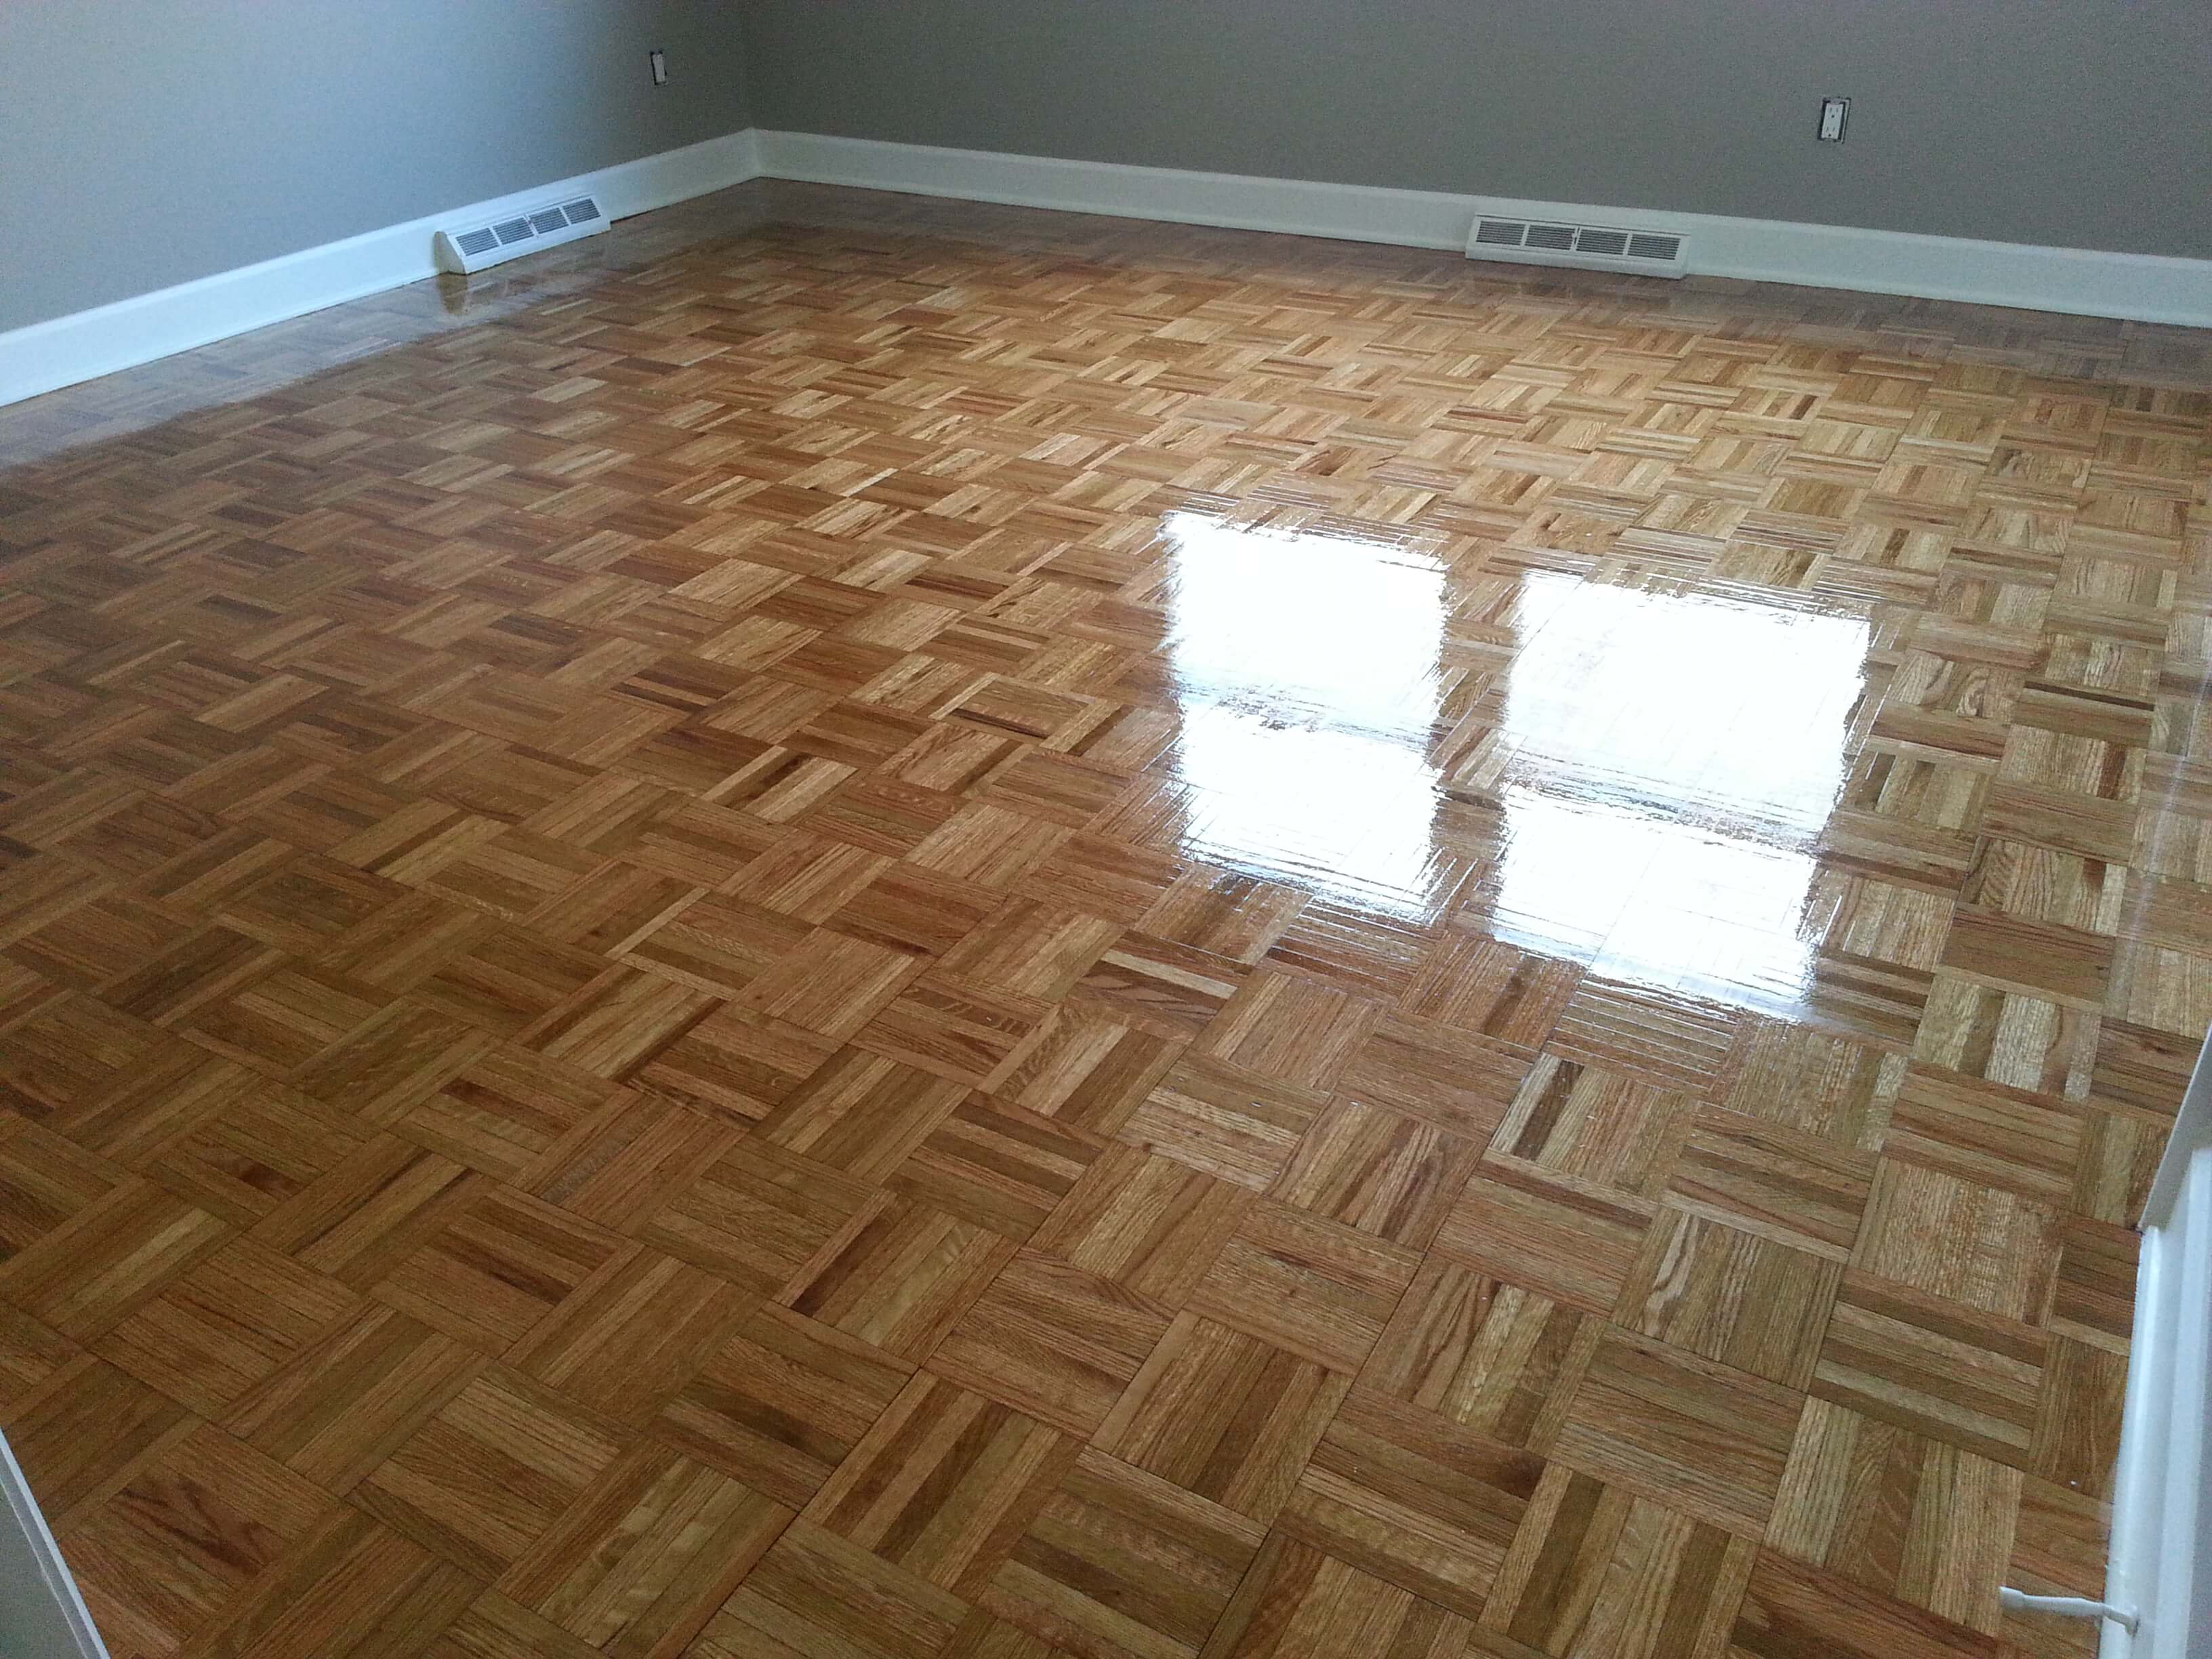 A refinished parquet floor done by Fabulous Floors Chicago